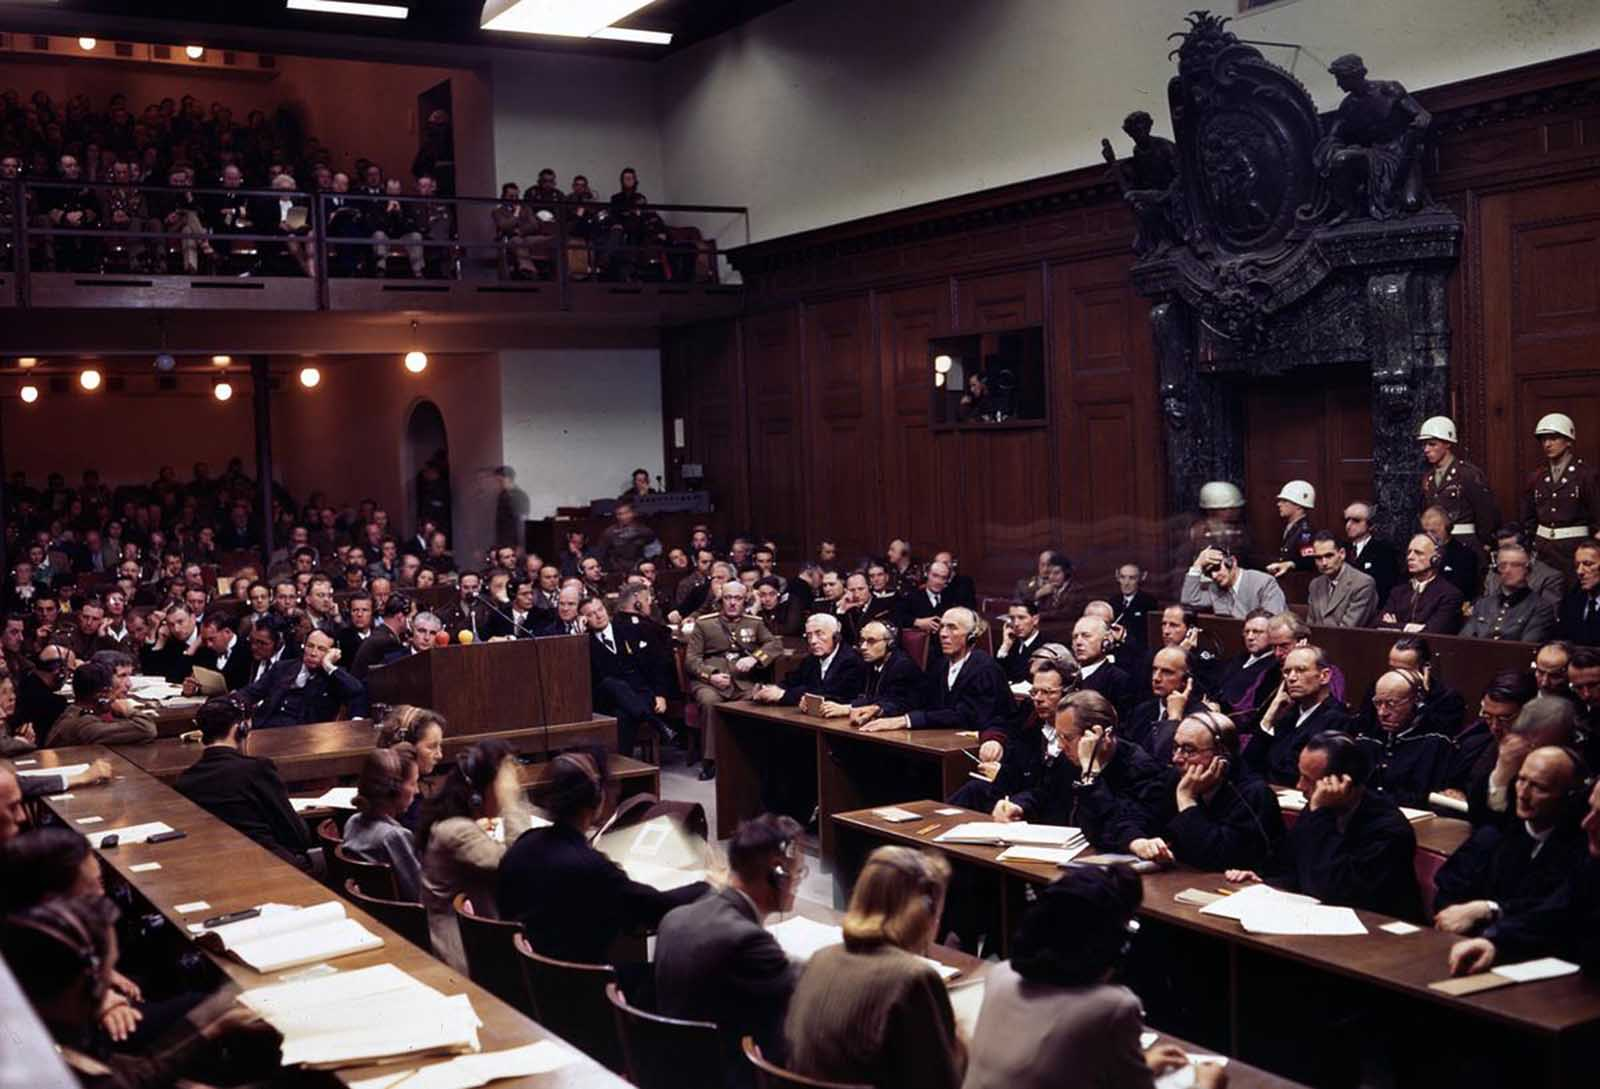 The interior of the courtroom of the Nuremberg War Crimes Trials in 1946 during the Trial of the Major War Criminals, prosecuting 24 government and civilian leaders of Nazi Germany. Visible here is Hermann Goering, former leader of the Luftwaffe, seated in the box at center right, wearing a gray jacket, headphones, and dark glasses. Next to him sits Rudolf Hess, former Deputy Fuhrer of Germany, then Joachim von Ribbentrop, former Nazi Minister of Foreign Affairs, Wilhelm Keitel, former leader of Germany's Supreme Command (blurry face), and Ernst Kaltenbrunner, the highest ranking surviving SS-leader. Goering, von Ribbentrop, Keitel, and Kaltenbrunner were sentenced to death by hanging along with 8 others -- Goering committed suicide the night before the execution. Hess was sentenced to life imprisonment, which he served at Spandau Prison, Berlin, where he died in 1987.